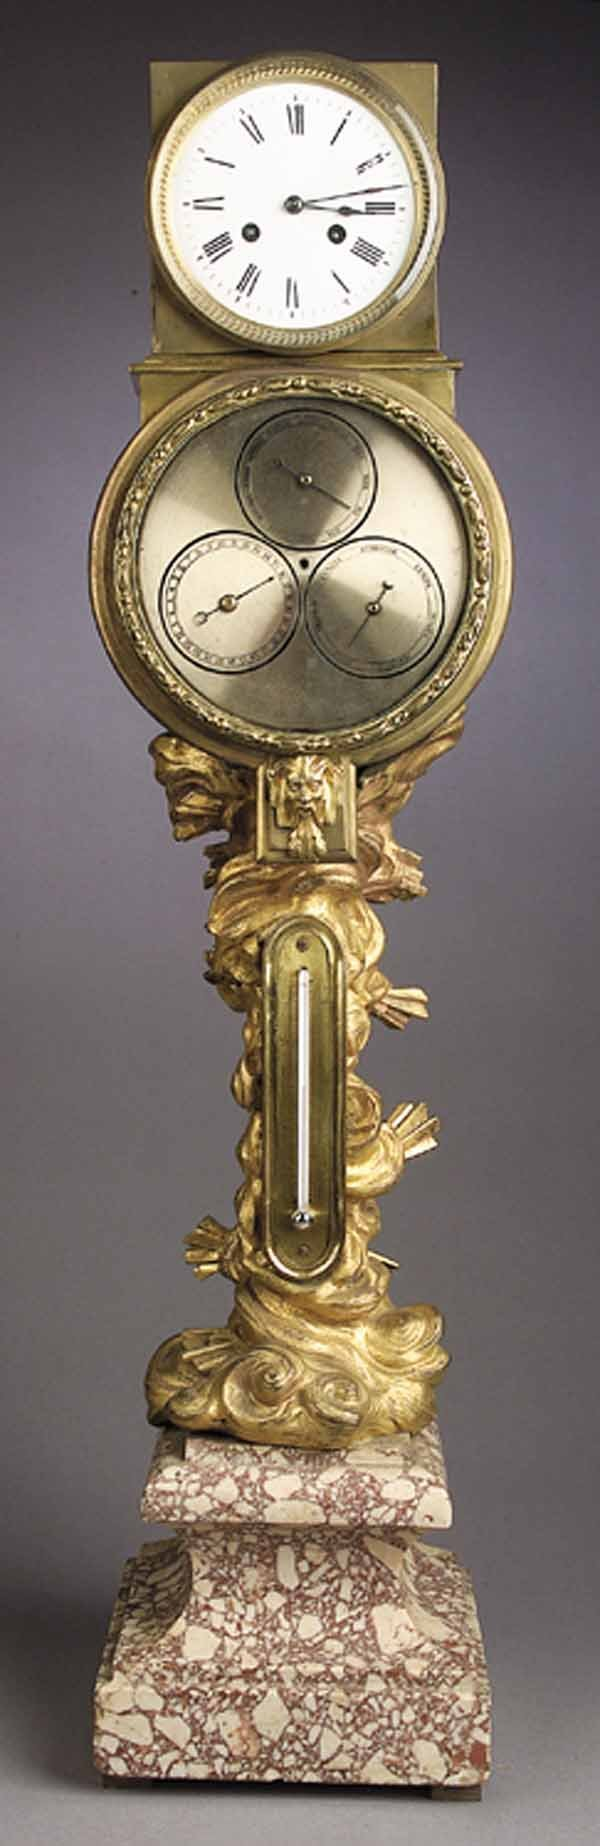 1075: A Louis XV-Style Gilt Bronze Clock